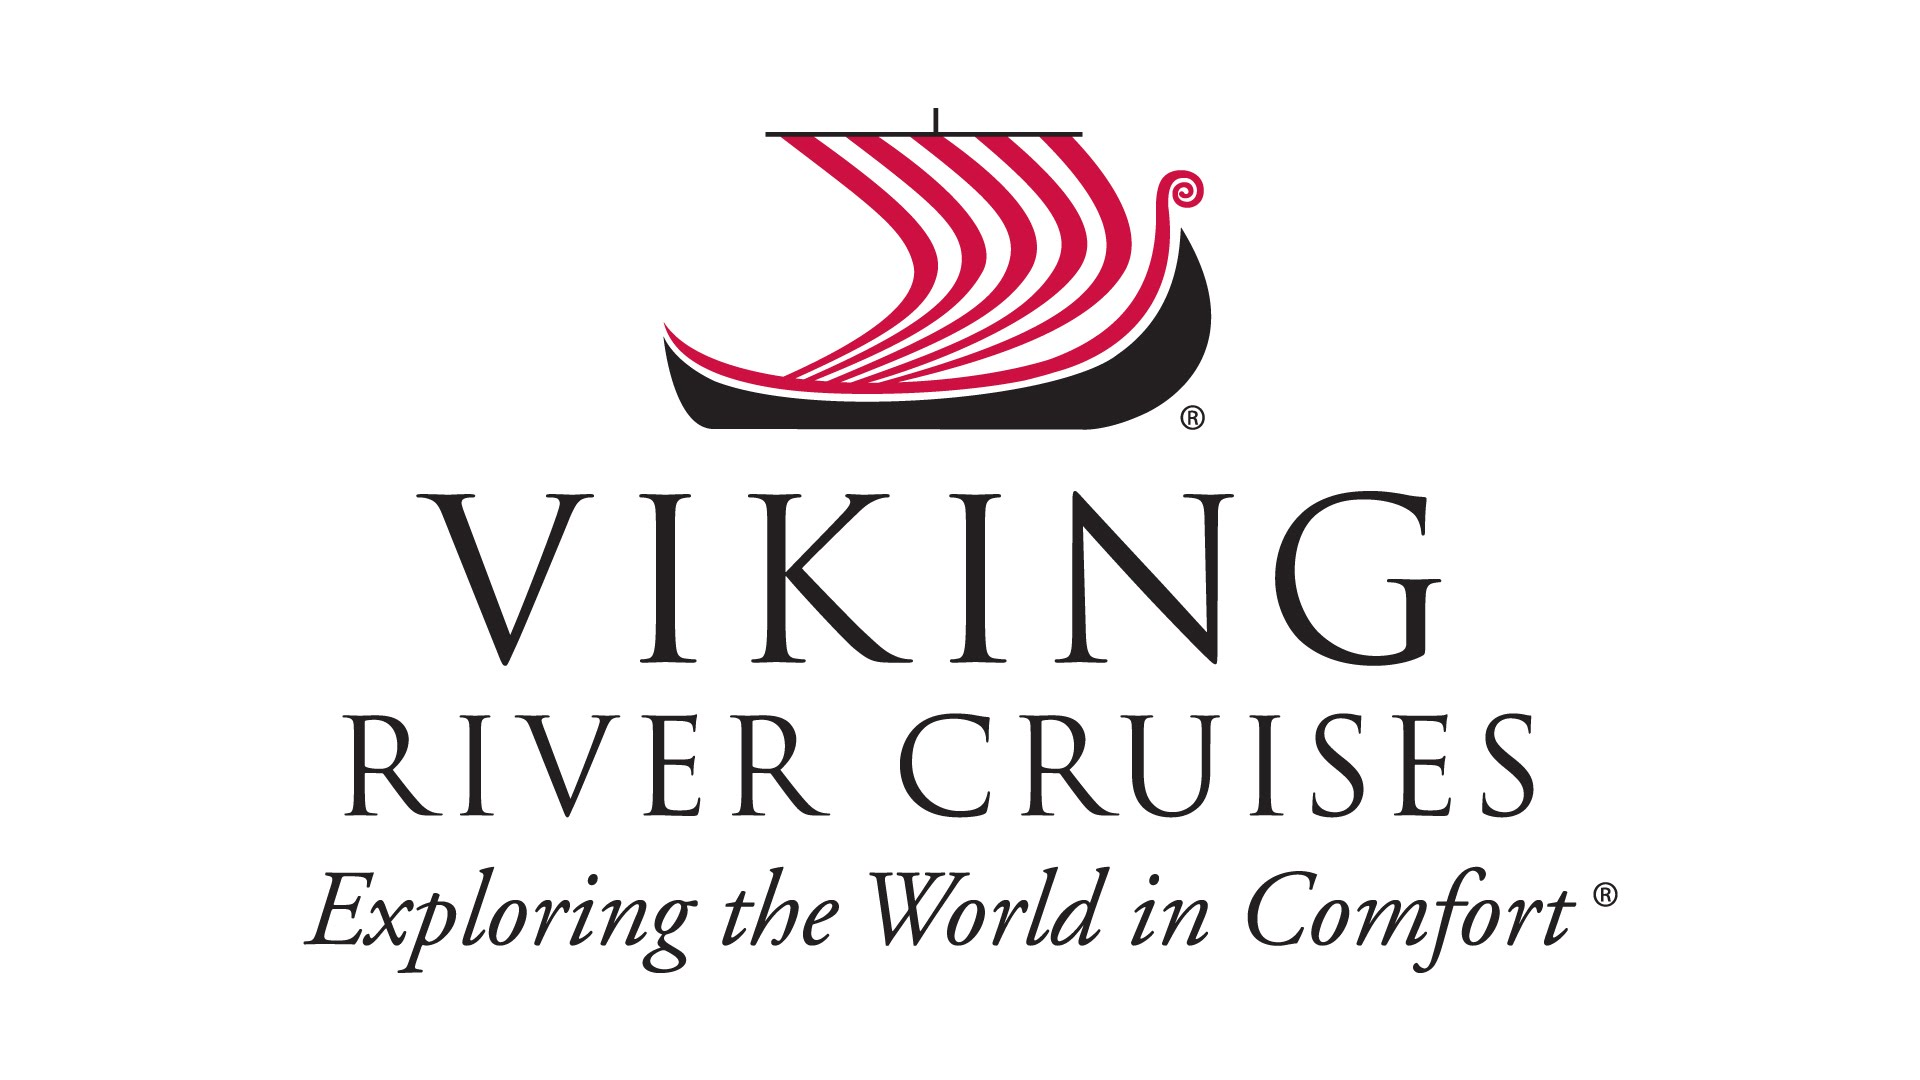 Liz Nixon's World of Travel - Viking River Cruises